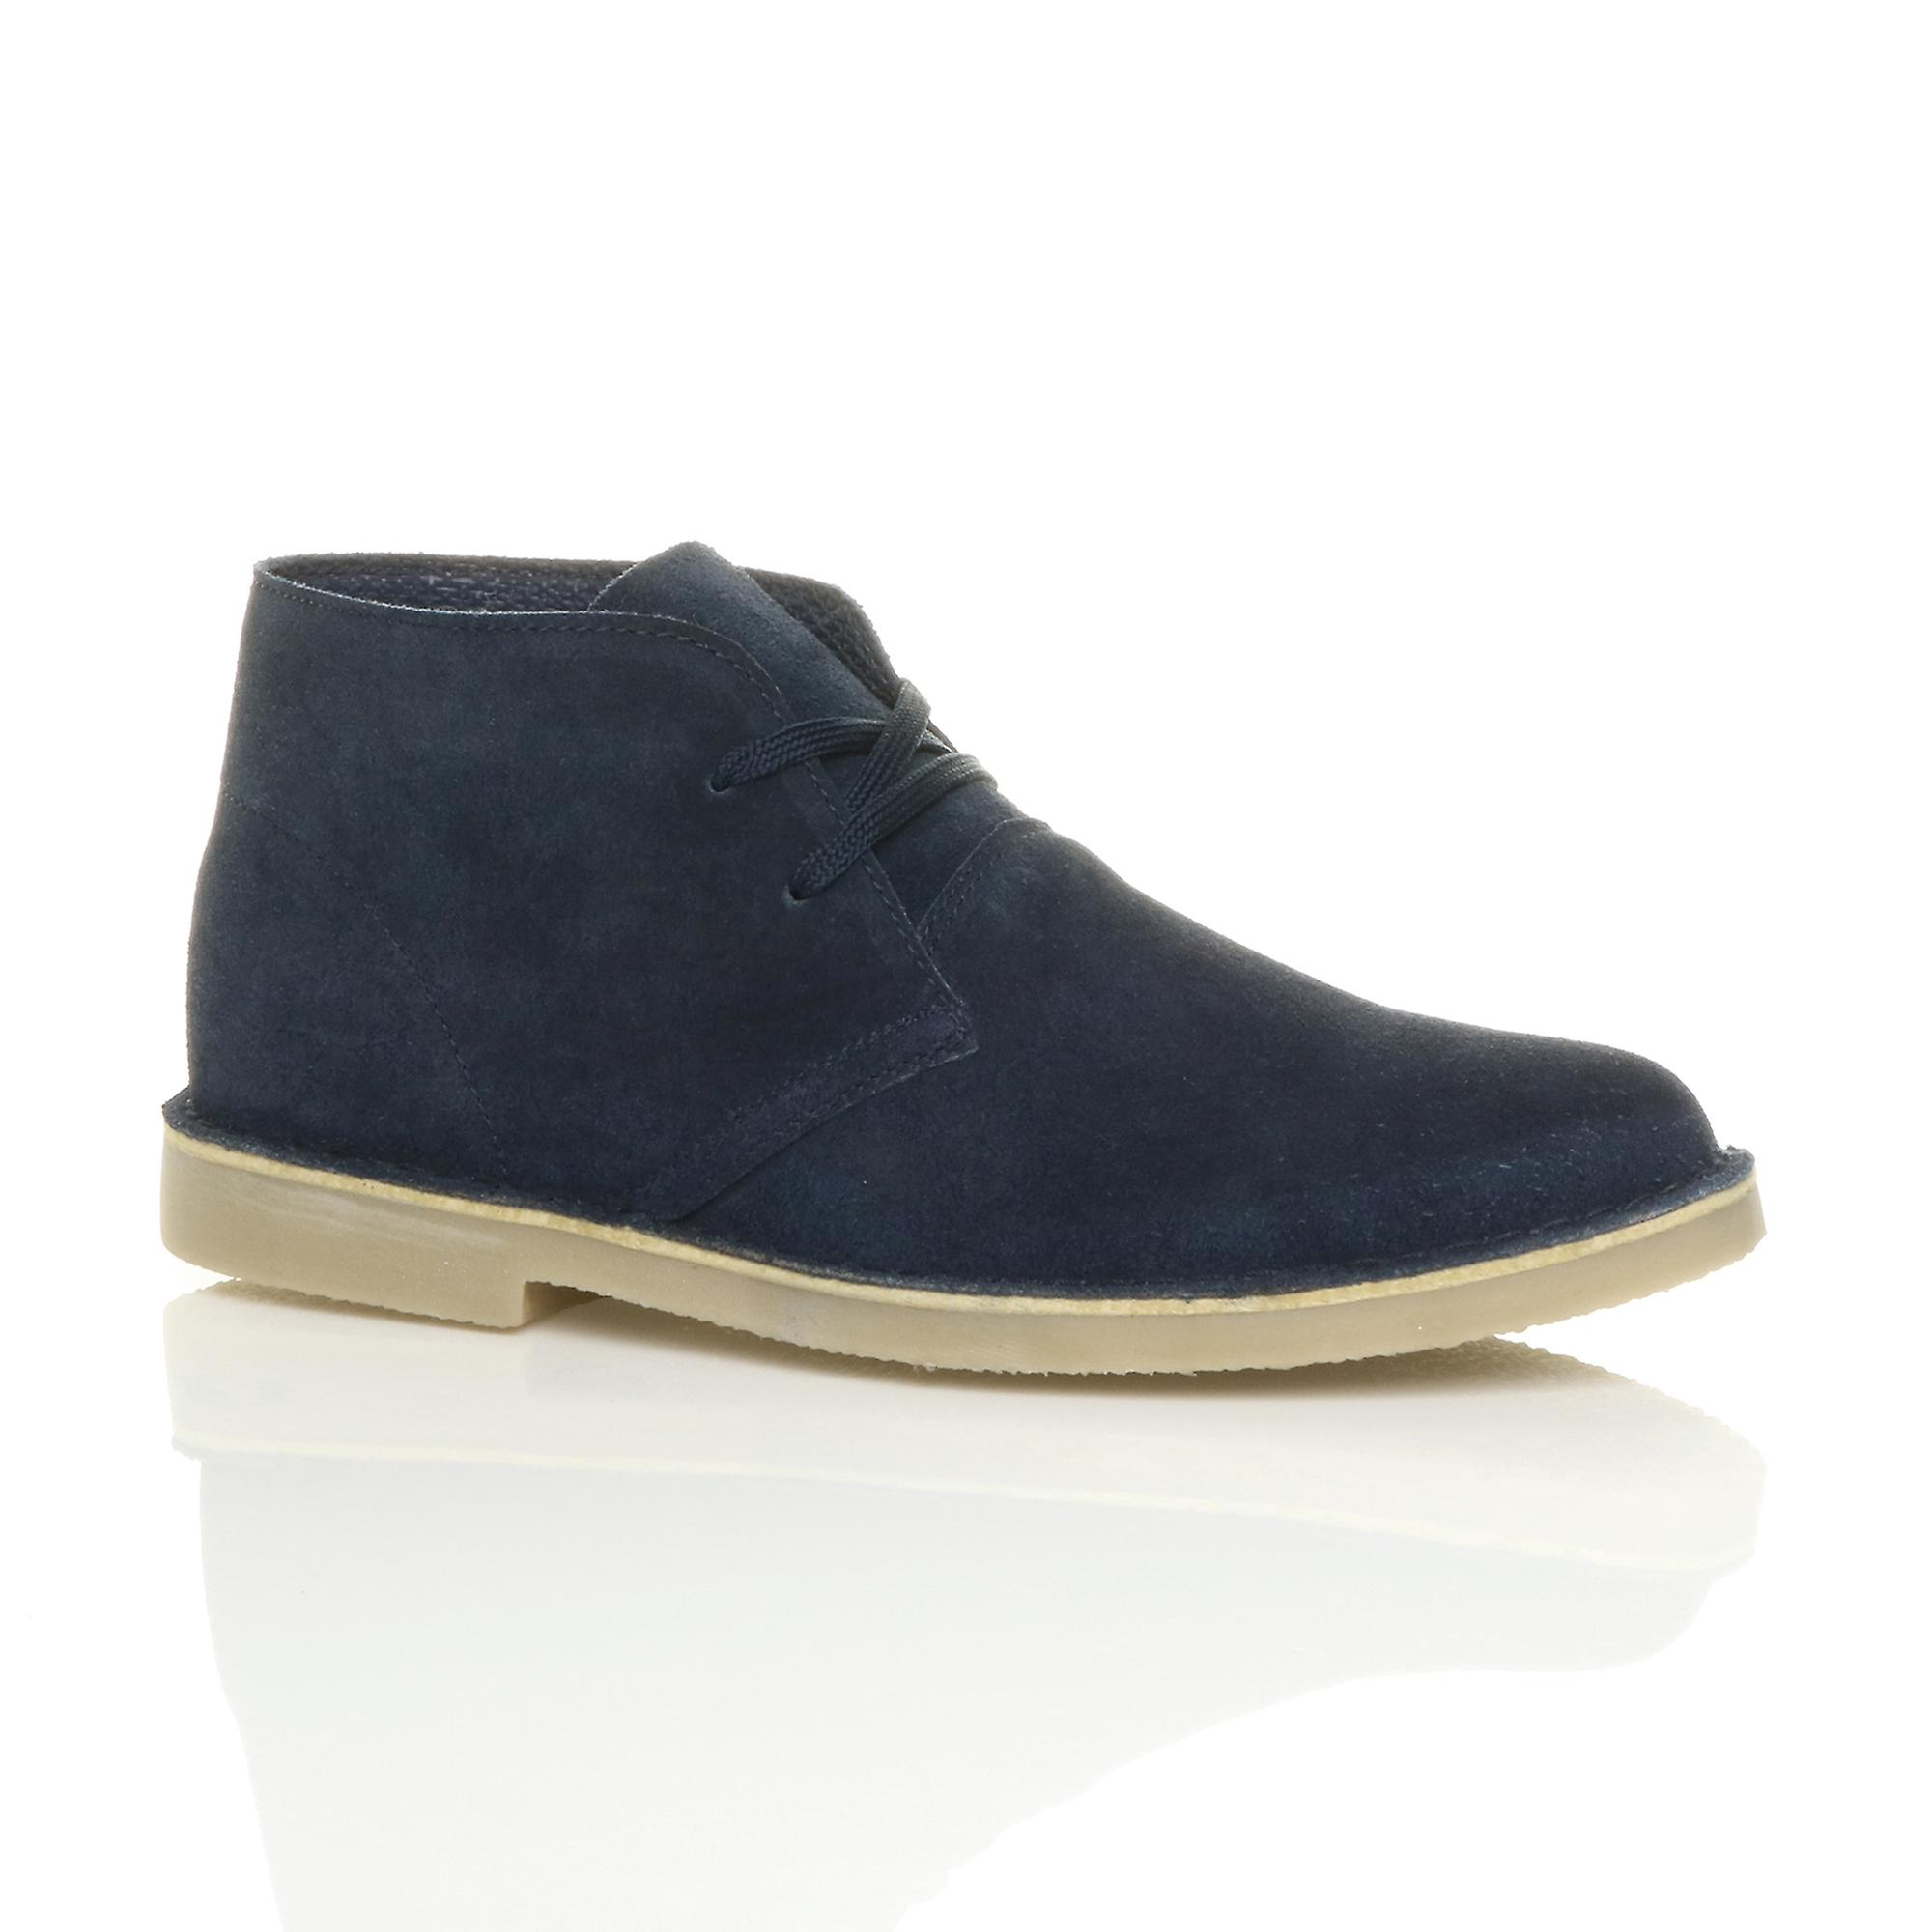 Ajvani chukka suede boots ankle leather up desert shoes mens classic lace rqTRYrP